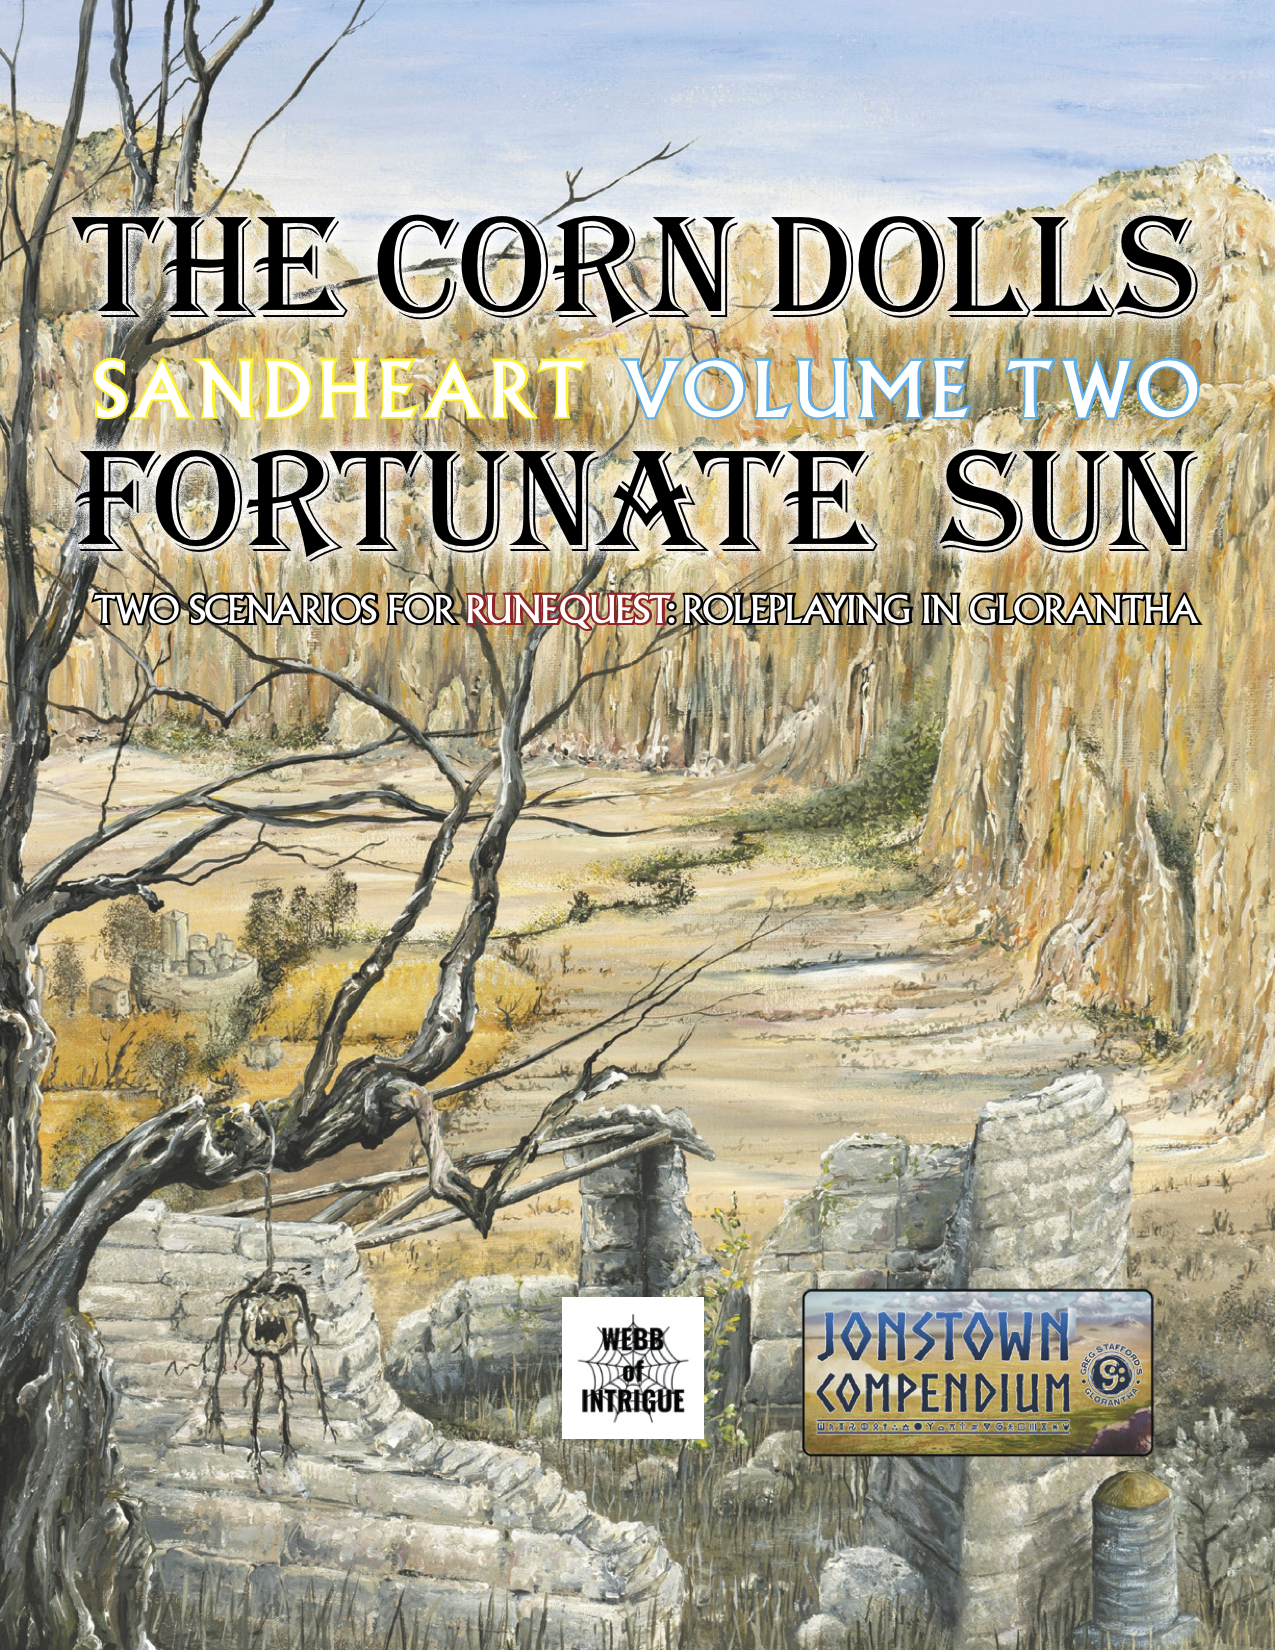 The Corn Dolls and Fortunate Sun: Sandheart Vol 2, Jonstown Compendium